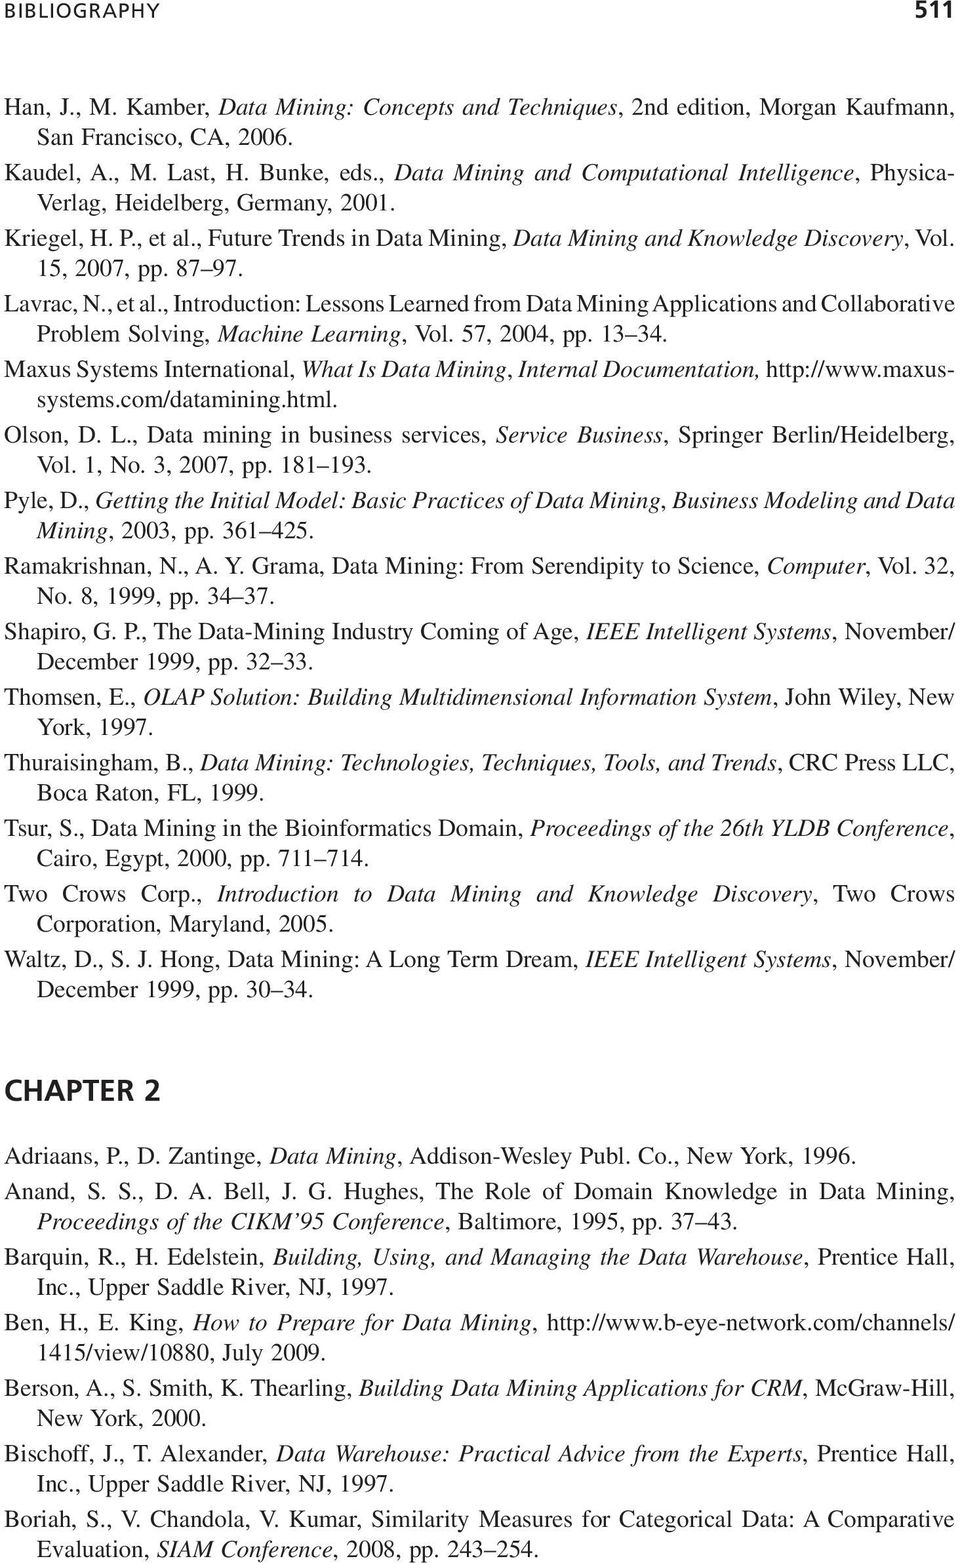 association rules thesis Discovering interesting temporal changes in association rules rules derived from it this thesis reviews approaches to rule change mining and shows their de ciencies, particularly with respect to the requirements of business applications.